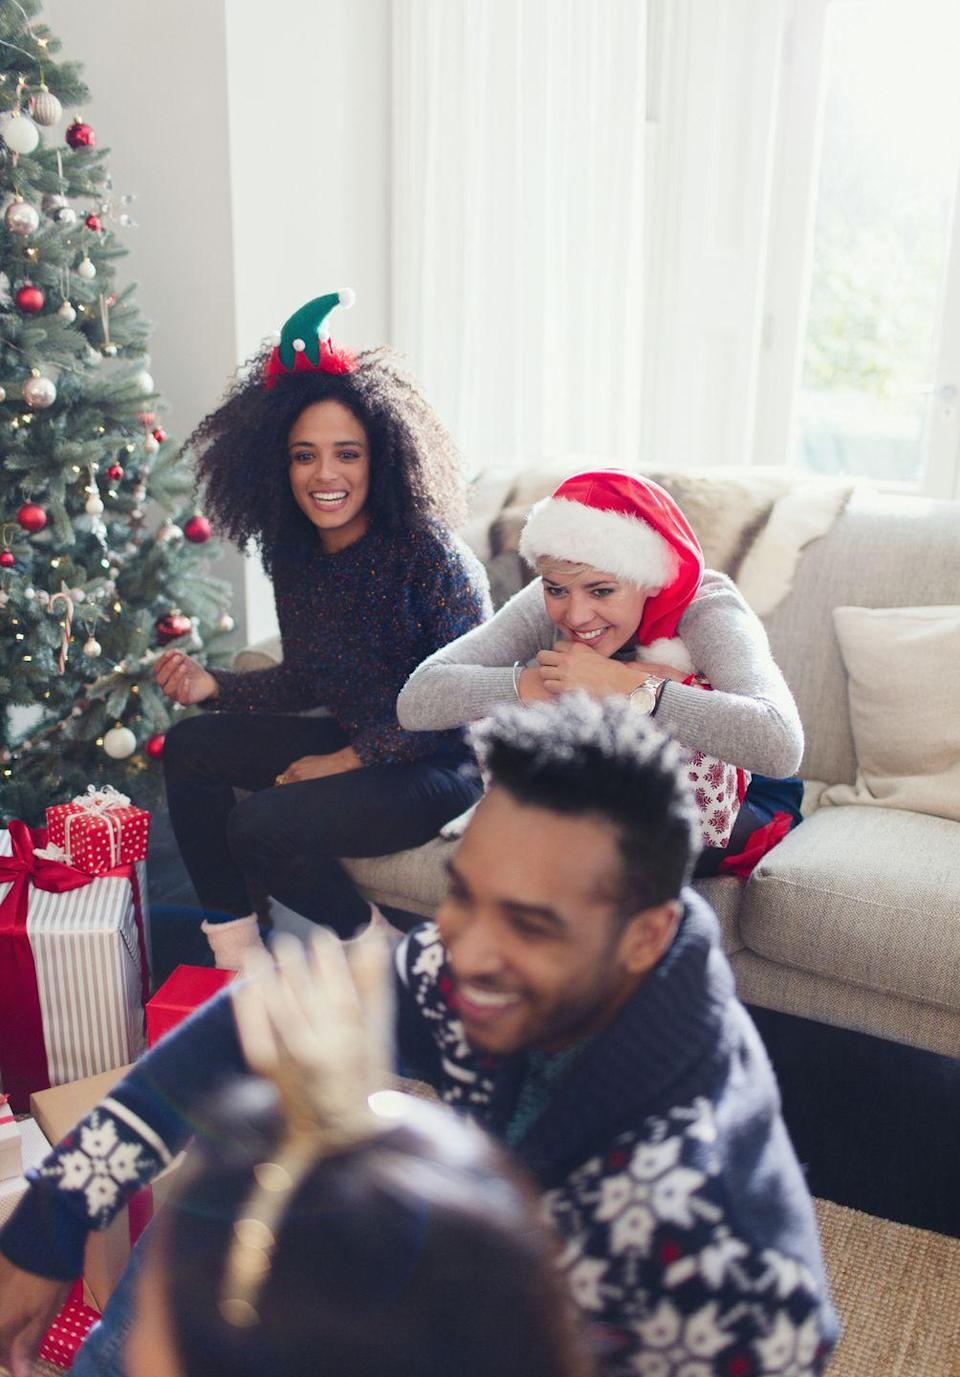 """<p>Everyone's heard of this classic party game! However, this one is not only Christmas-inspired, but it's also adults-only too.</p><p><strong>Get the tutorial at <a href=""""https://www.backyard.games/holiday-games/hilarious-would-you-rather/"""" rel=""""nofollow noopener"""" target=""""_blank"""" data-ylk=""""slk:Backyard Games"""" class=""""link rapid-noclick-resp"""">Backyard Games</a>.</strong></p>"""